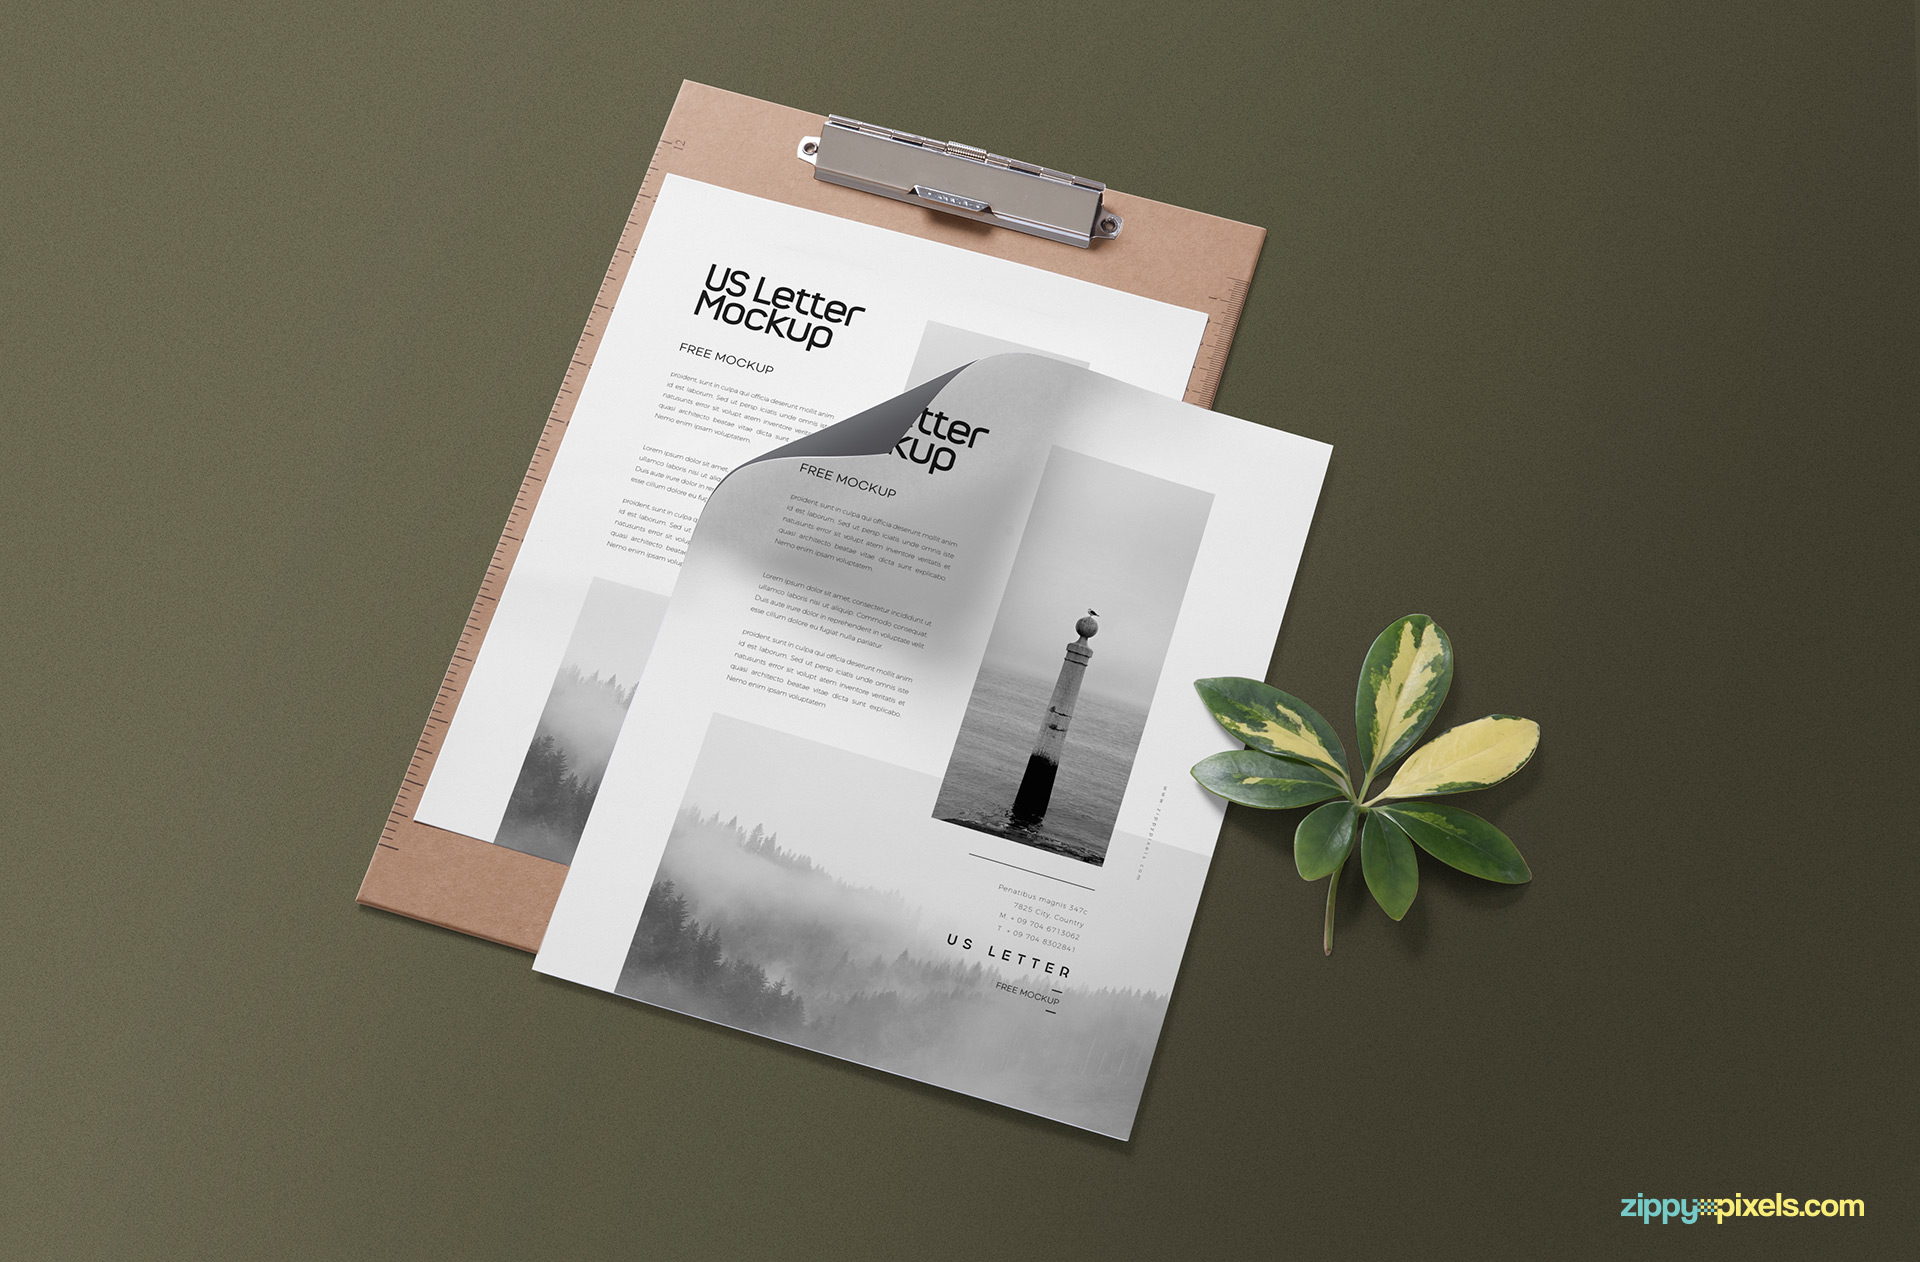 Free US letter mockup for the presentation of your stationery designs.